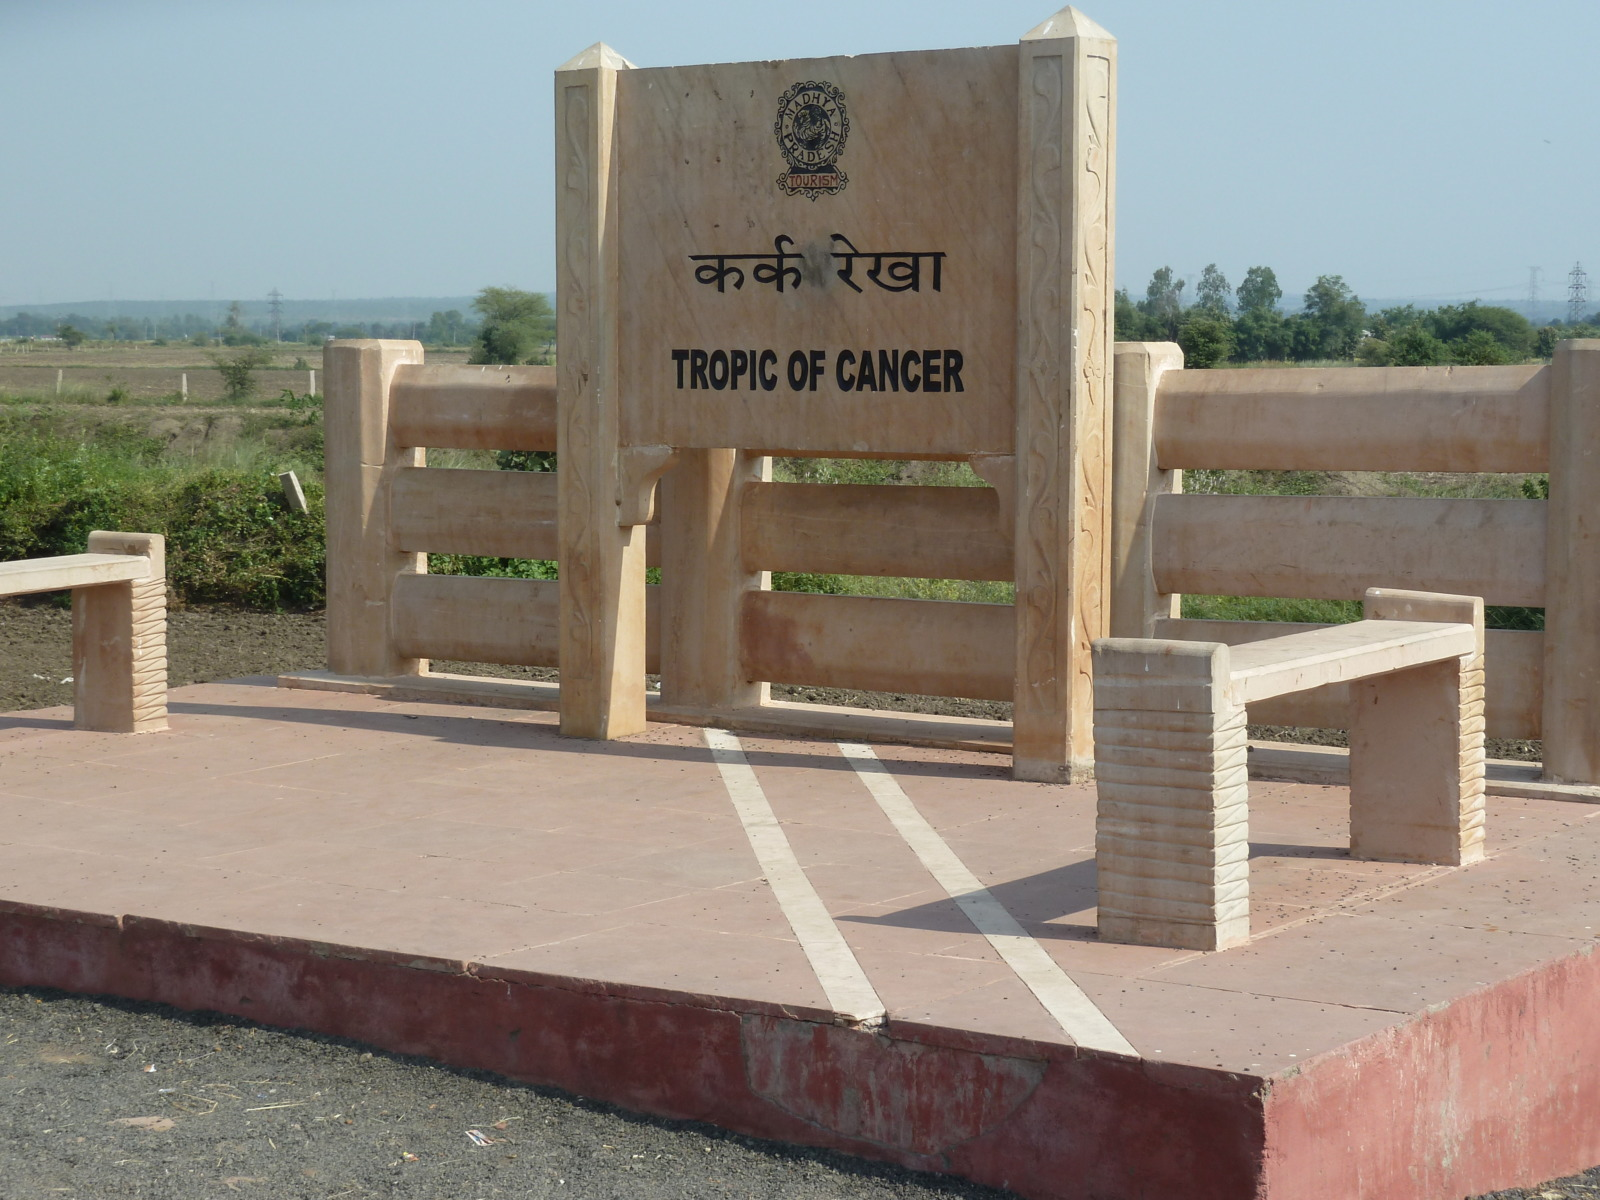 The Tropic of Cancer line in the road